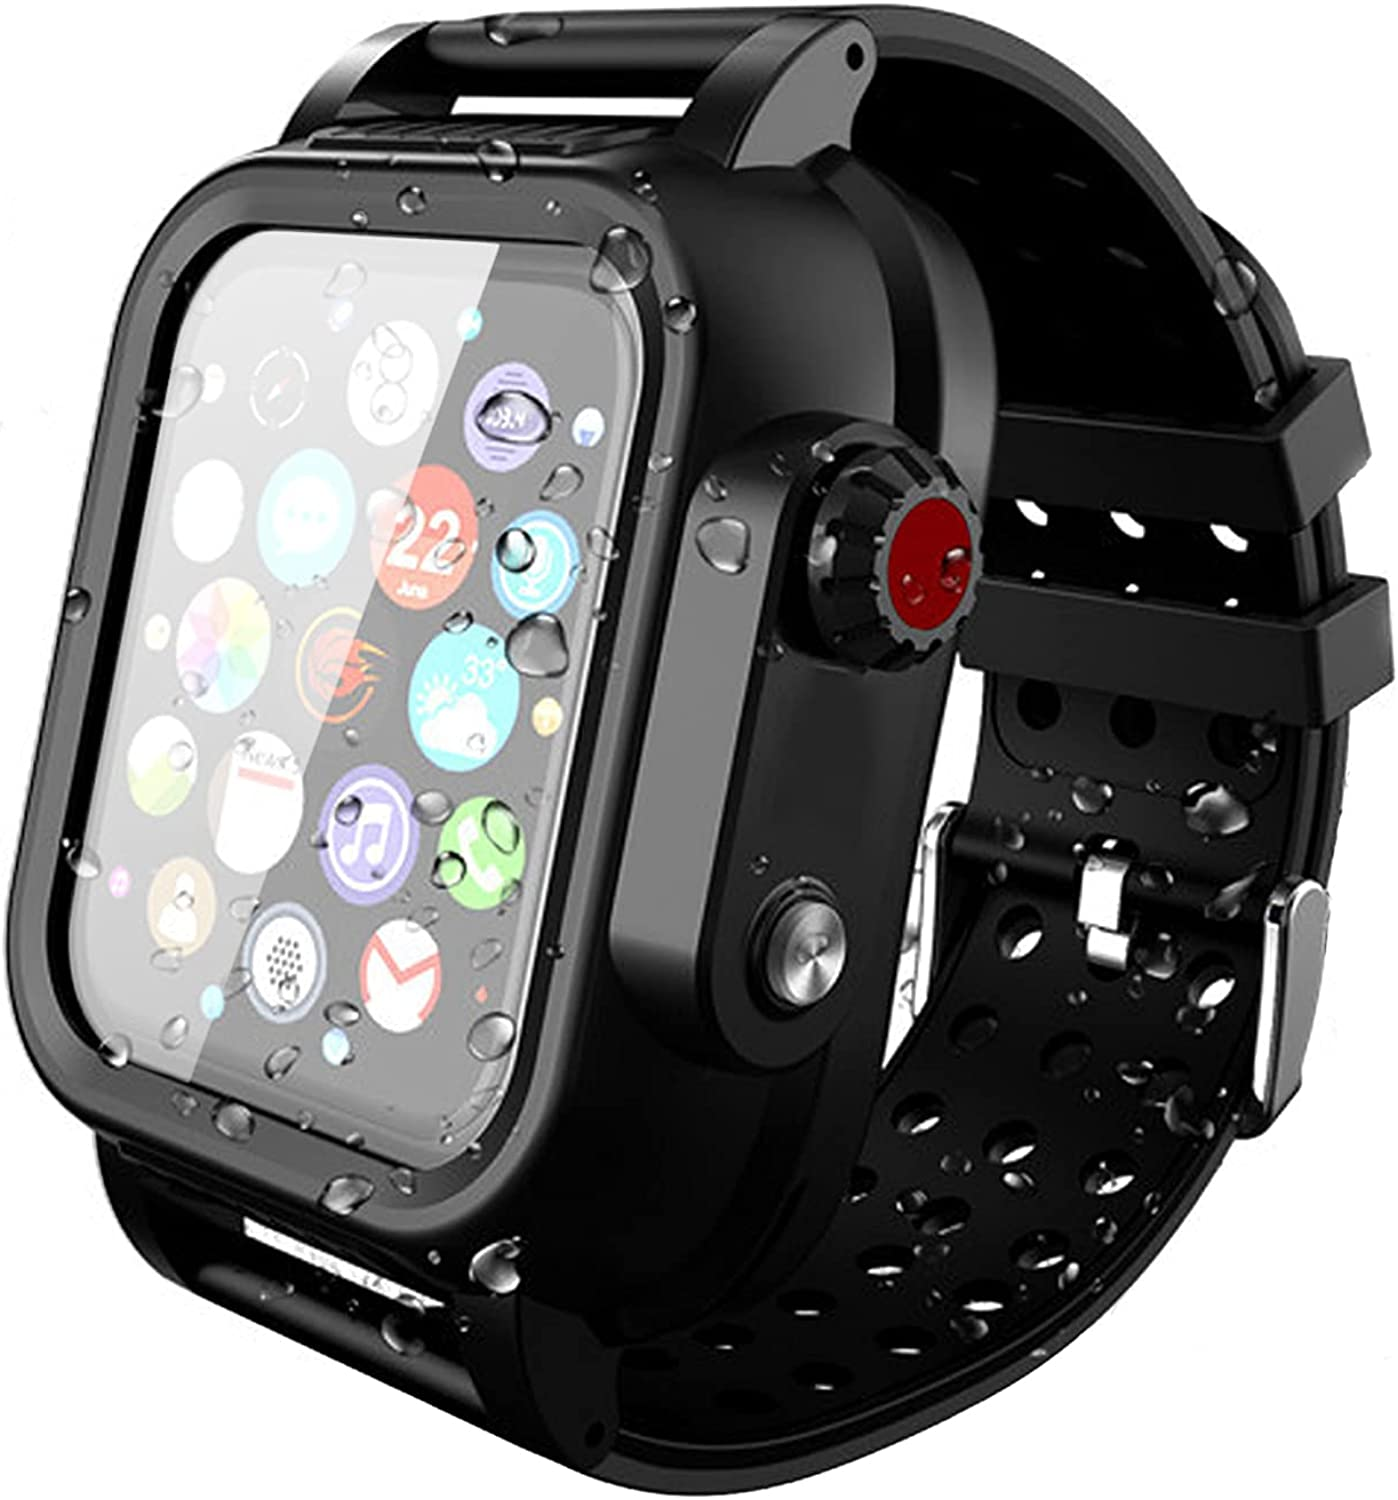 Compatible for Apple Watch Series 6 5 4 Band with Case, Built-in Screen Protector Waterproof Full Body Case Daily Waterproof for iWatch Strap set 44 42 40mm, Shockproof, Anti-Scratch and Dustproof Loop Band with Case